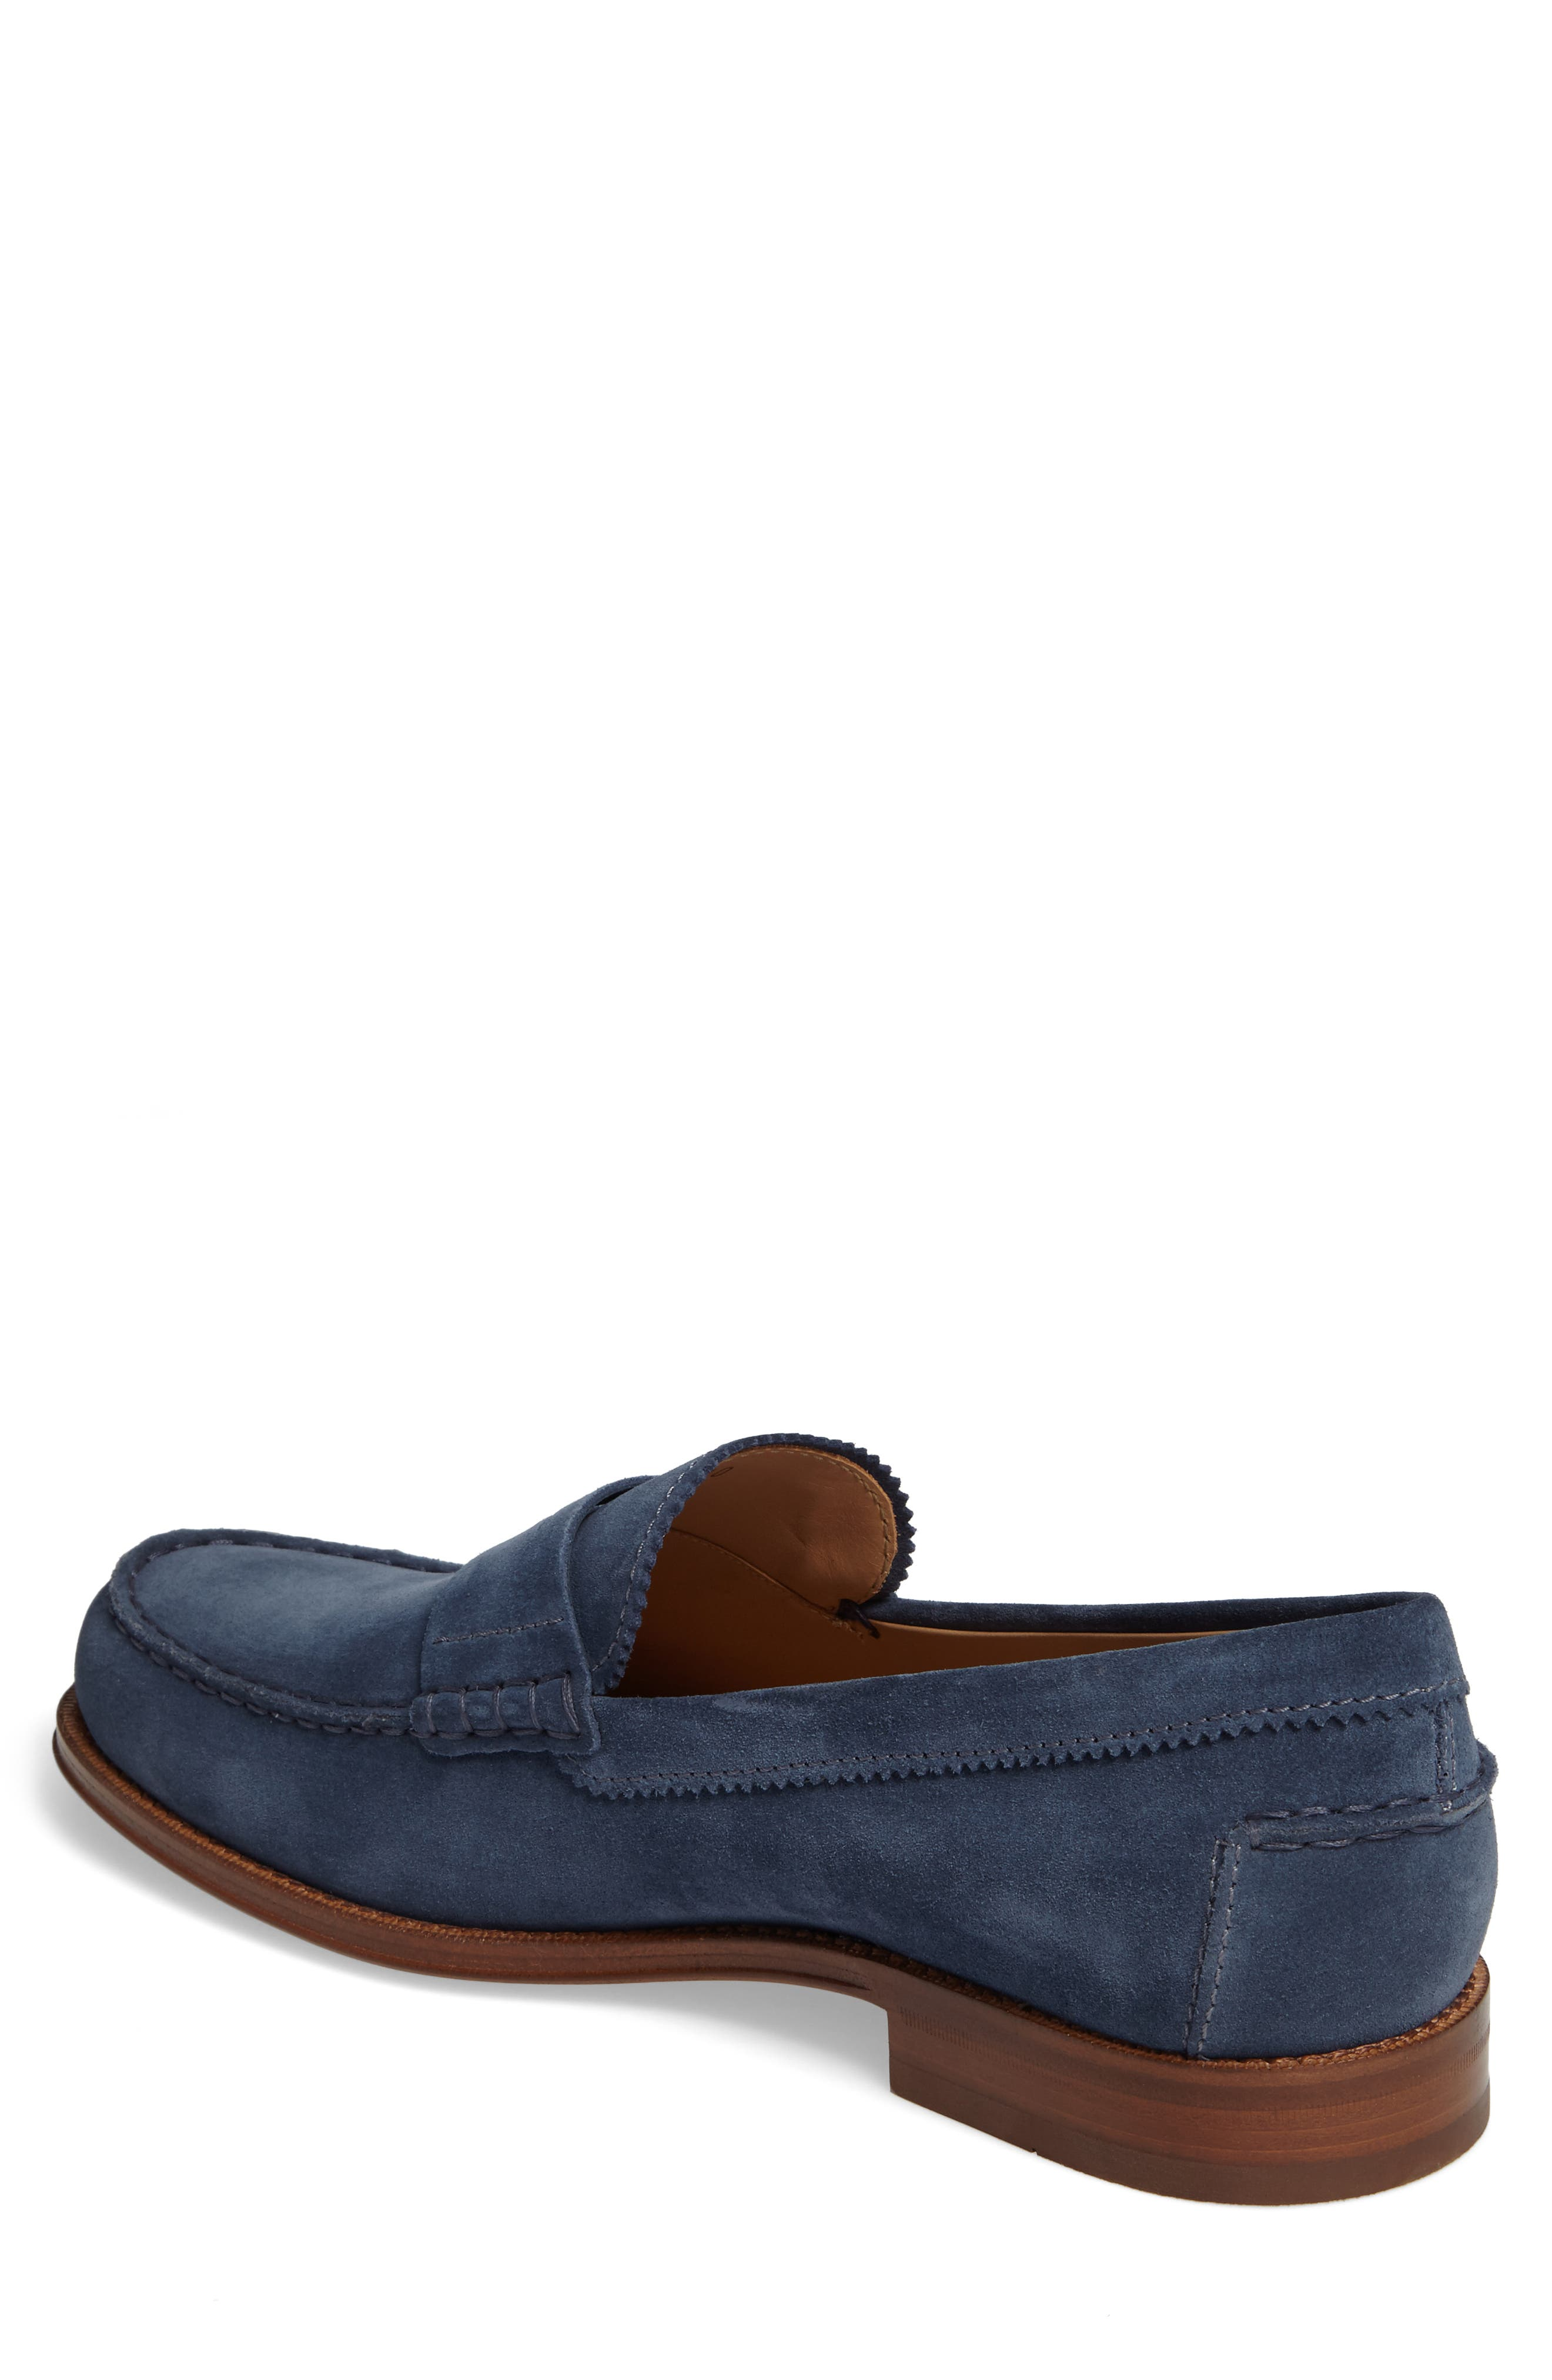 Suede Penny Loafer,                             Alternate thumbnail 4, color,